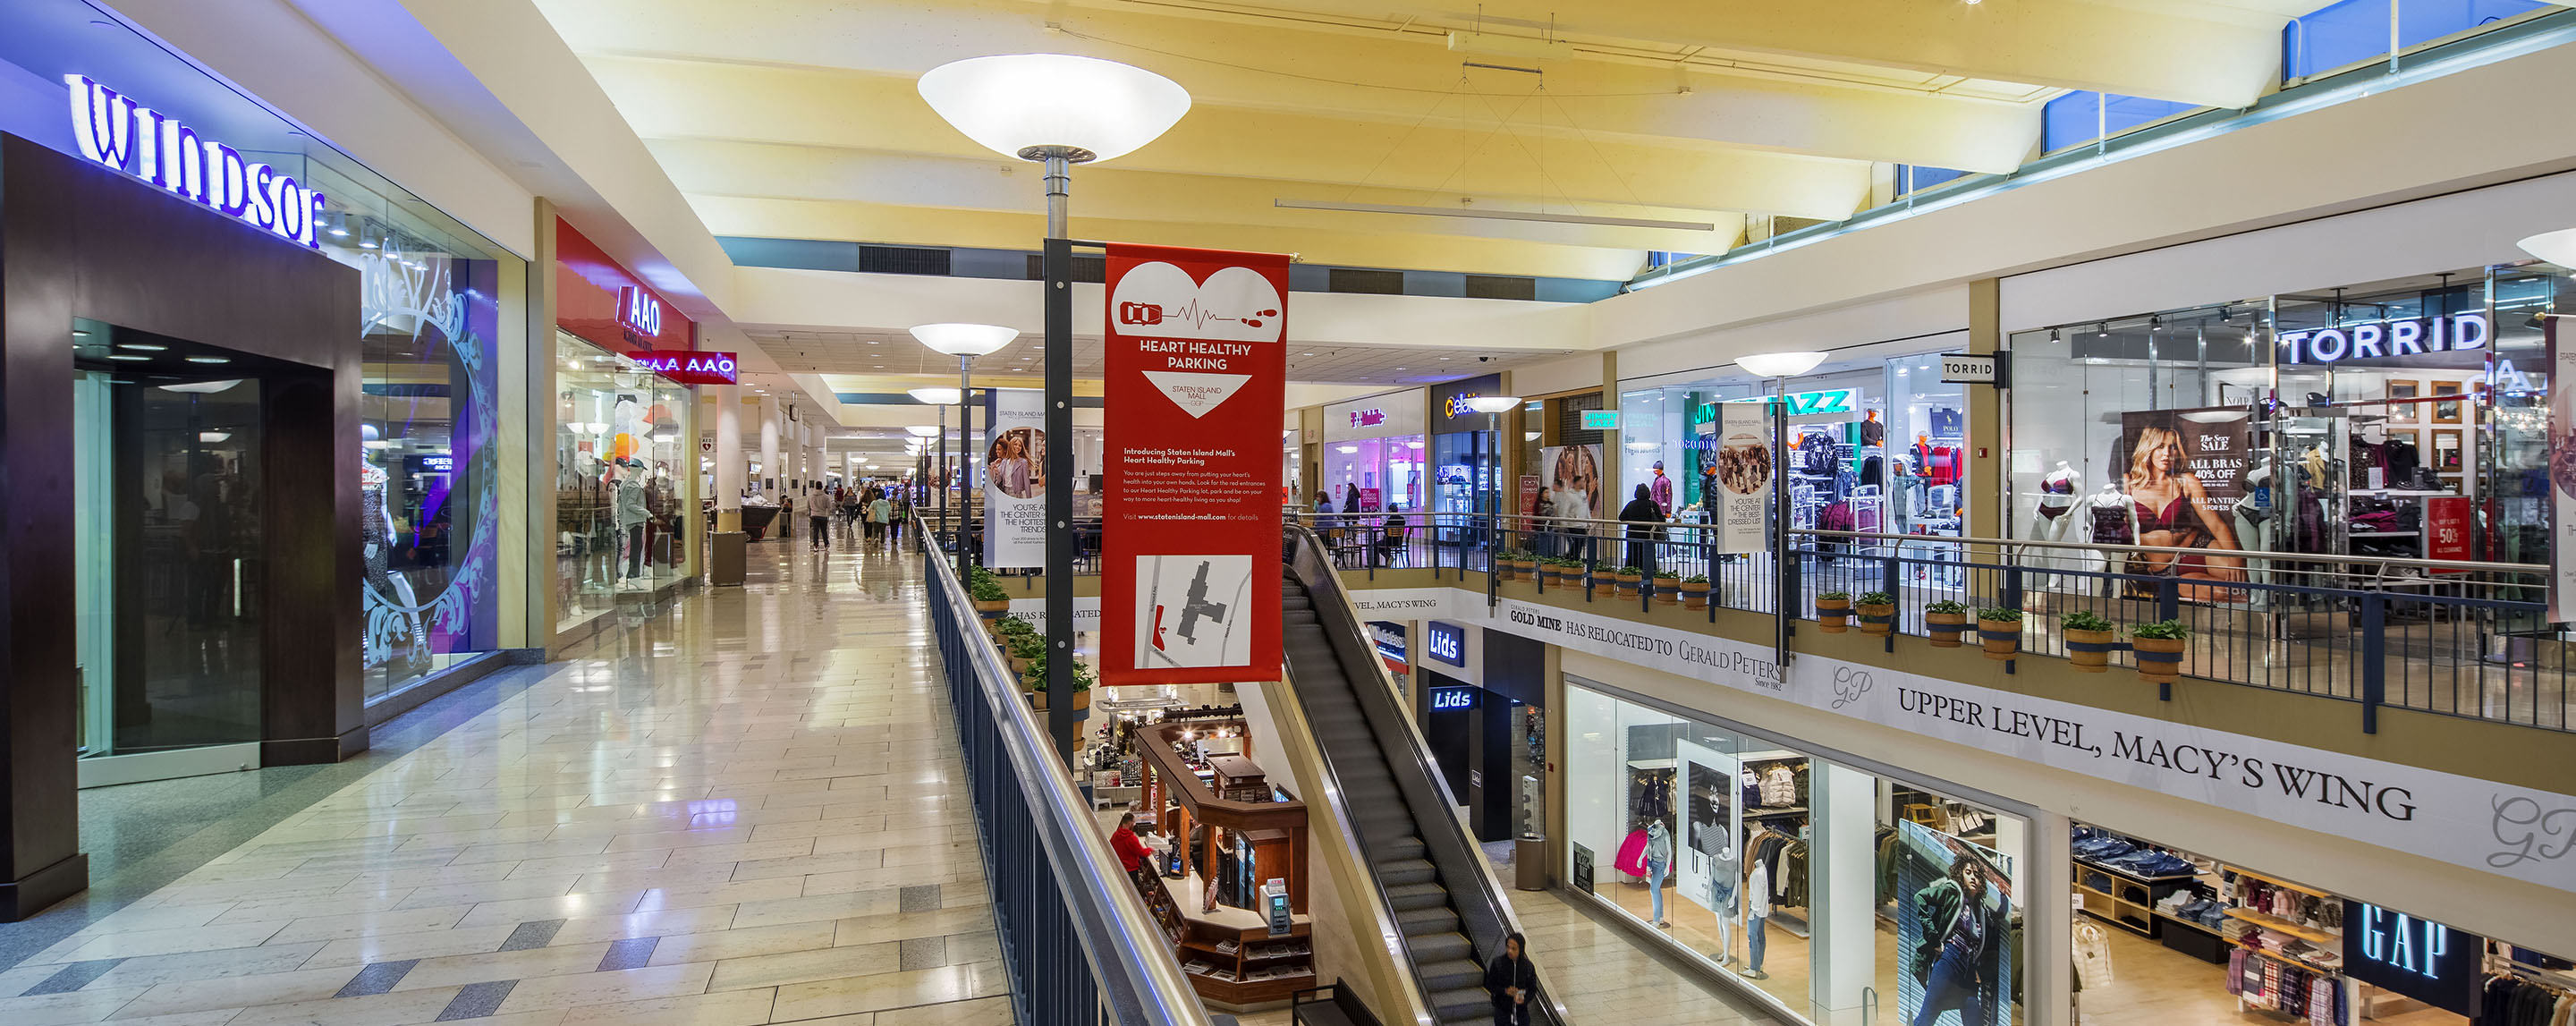 On two levels of the Staten Island Mall, there are a variety of retailers to which shoppers can get to via a centrally located escalator.